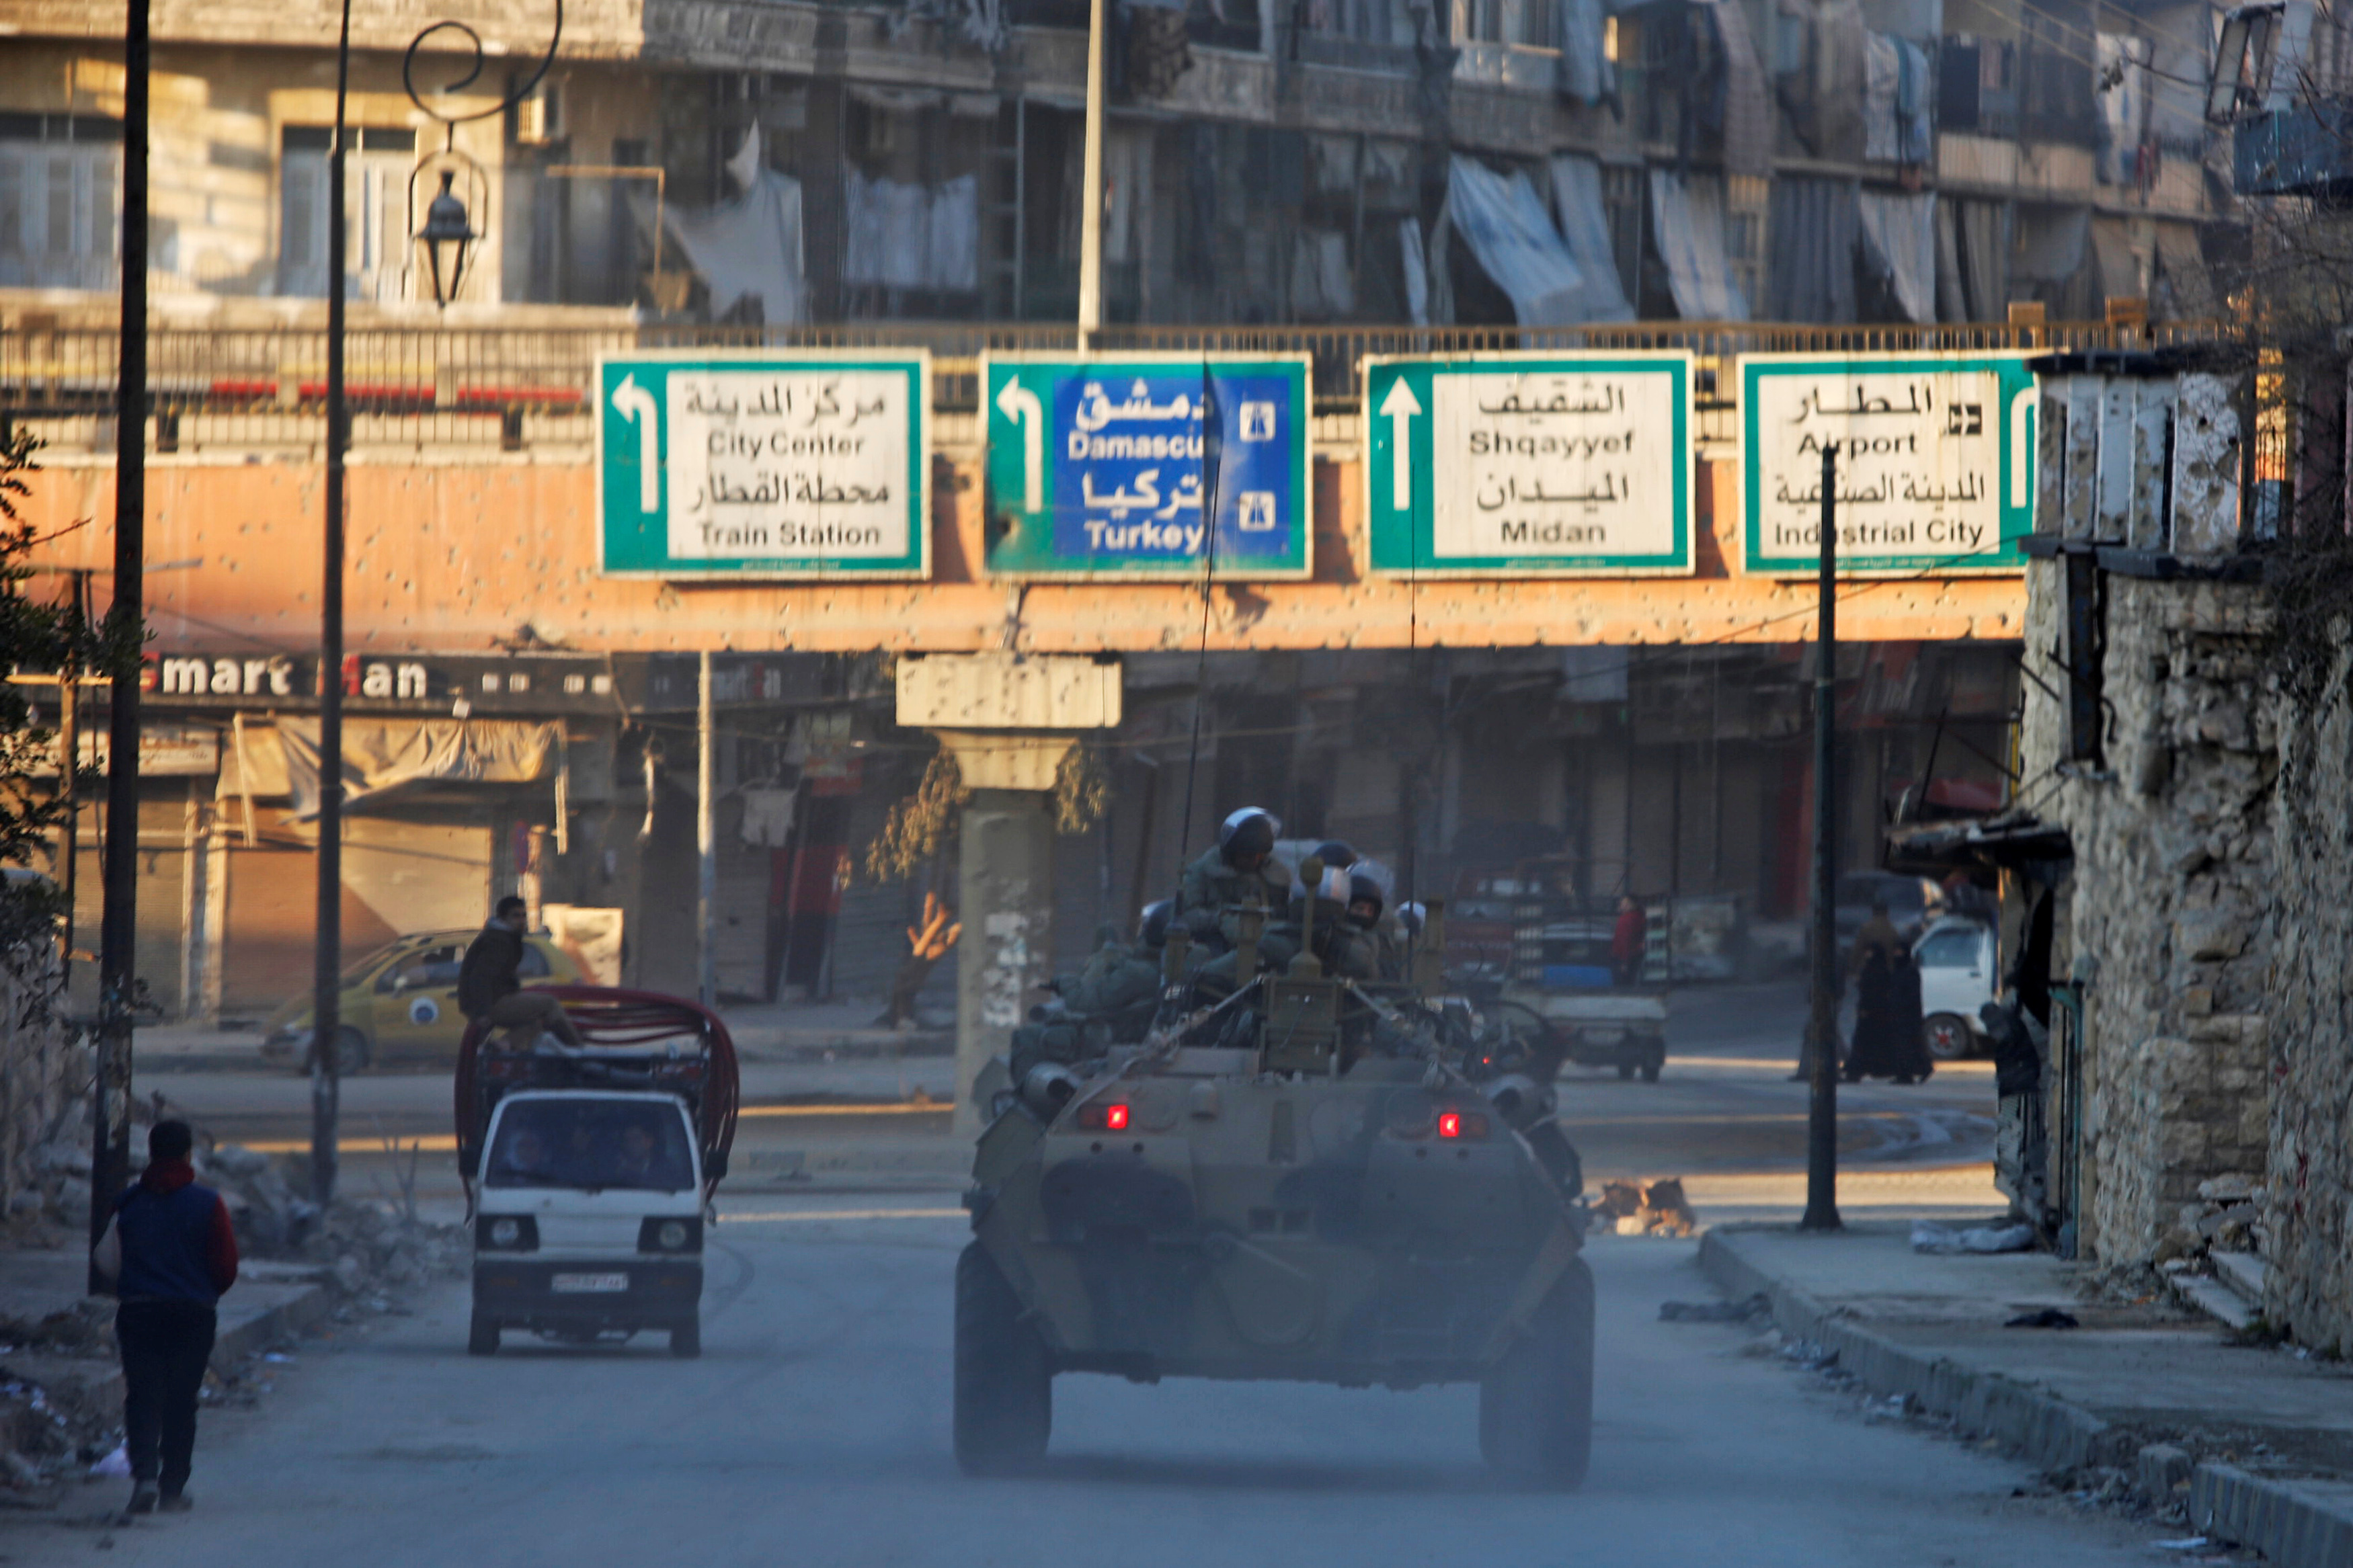 Russian soldiers, on armoured vehicles, patrol a street in Aleppo, Syria February 2, 2017. REUTERS/Omar Sanadiki - RTX2ZEET